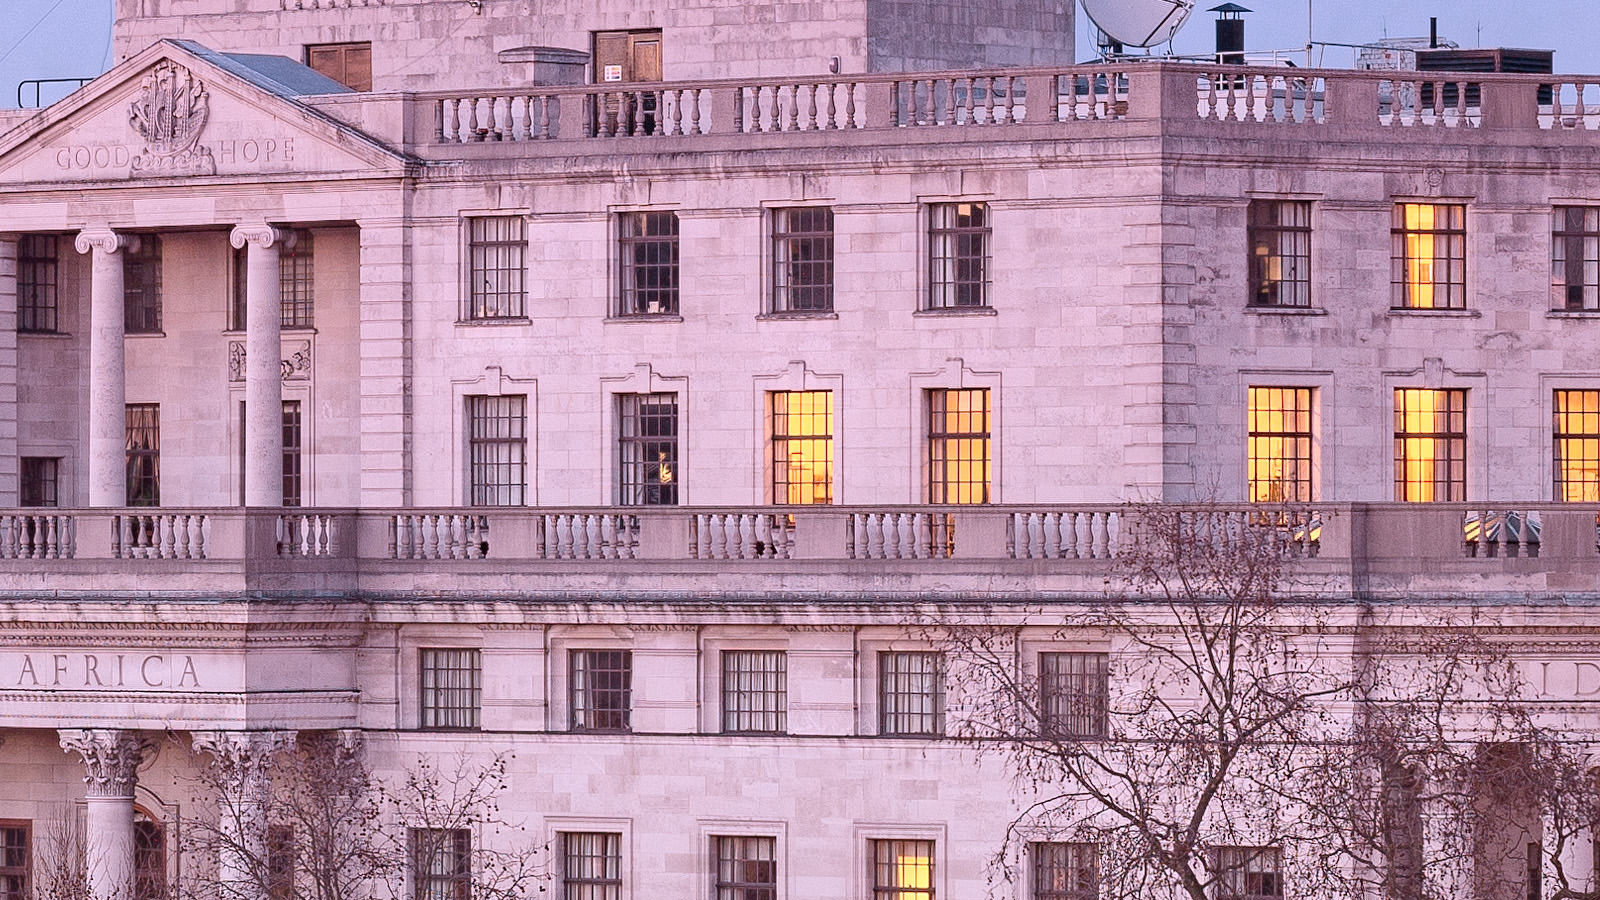 Trafalgar Square Twilight Detail - South Africa House in London's Trafalgar Square. London Fine Art Photograph.